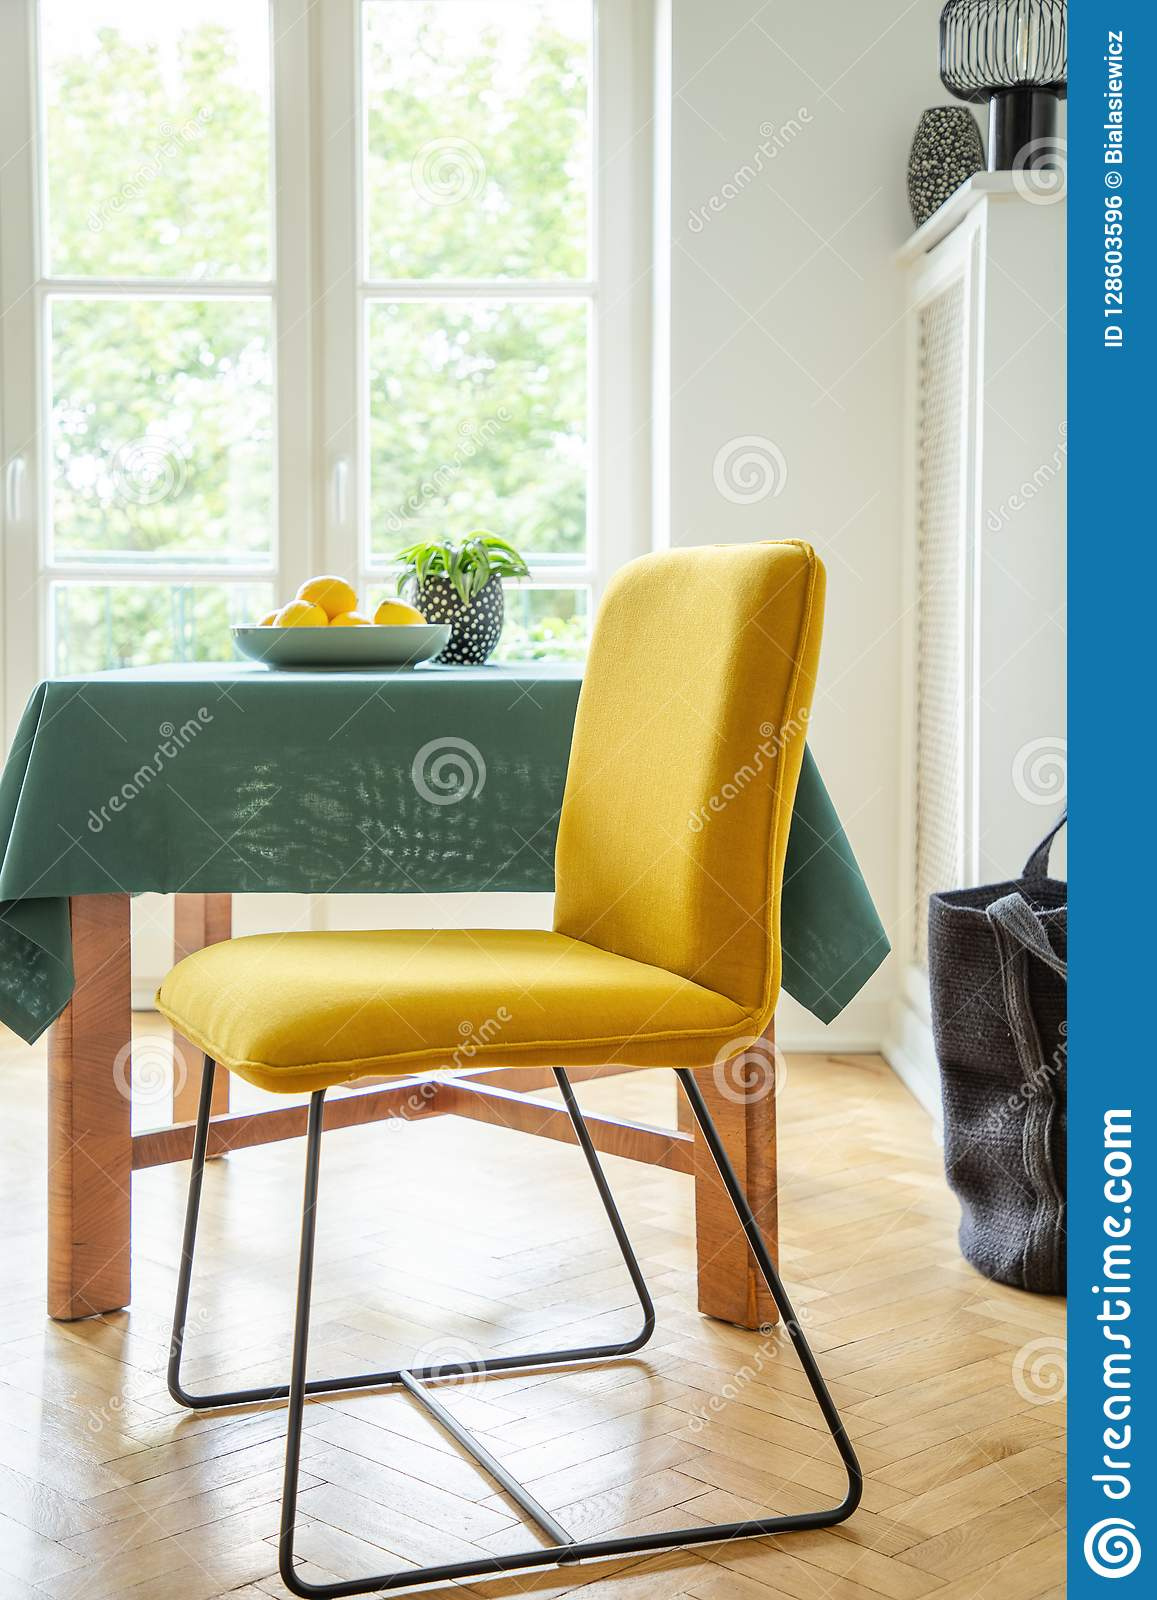 Strange Fruit Bowl On A Wooden Table And A Modern Chair With Bright Creativecarmelina Interior Chair Design Creativecarmelinacom